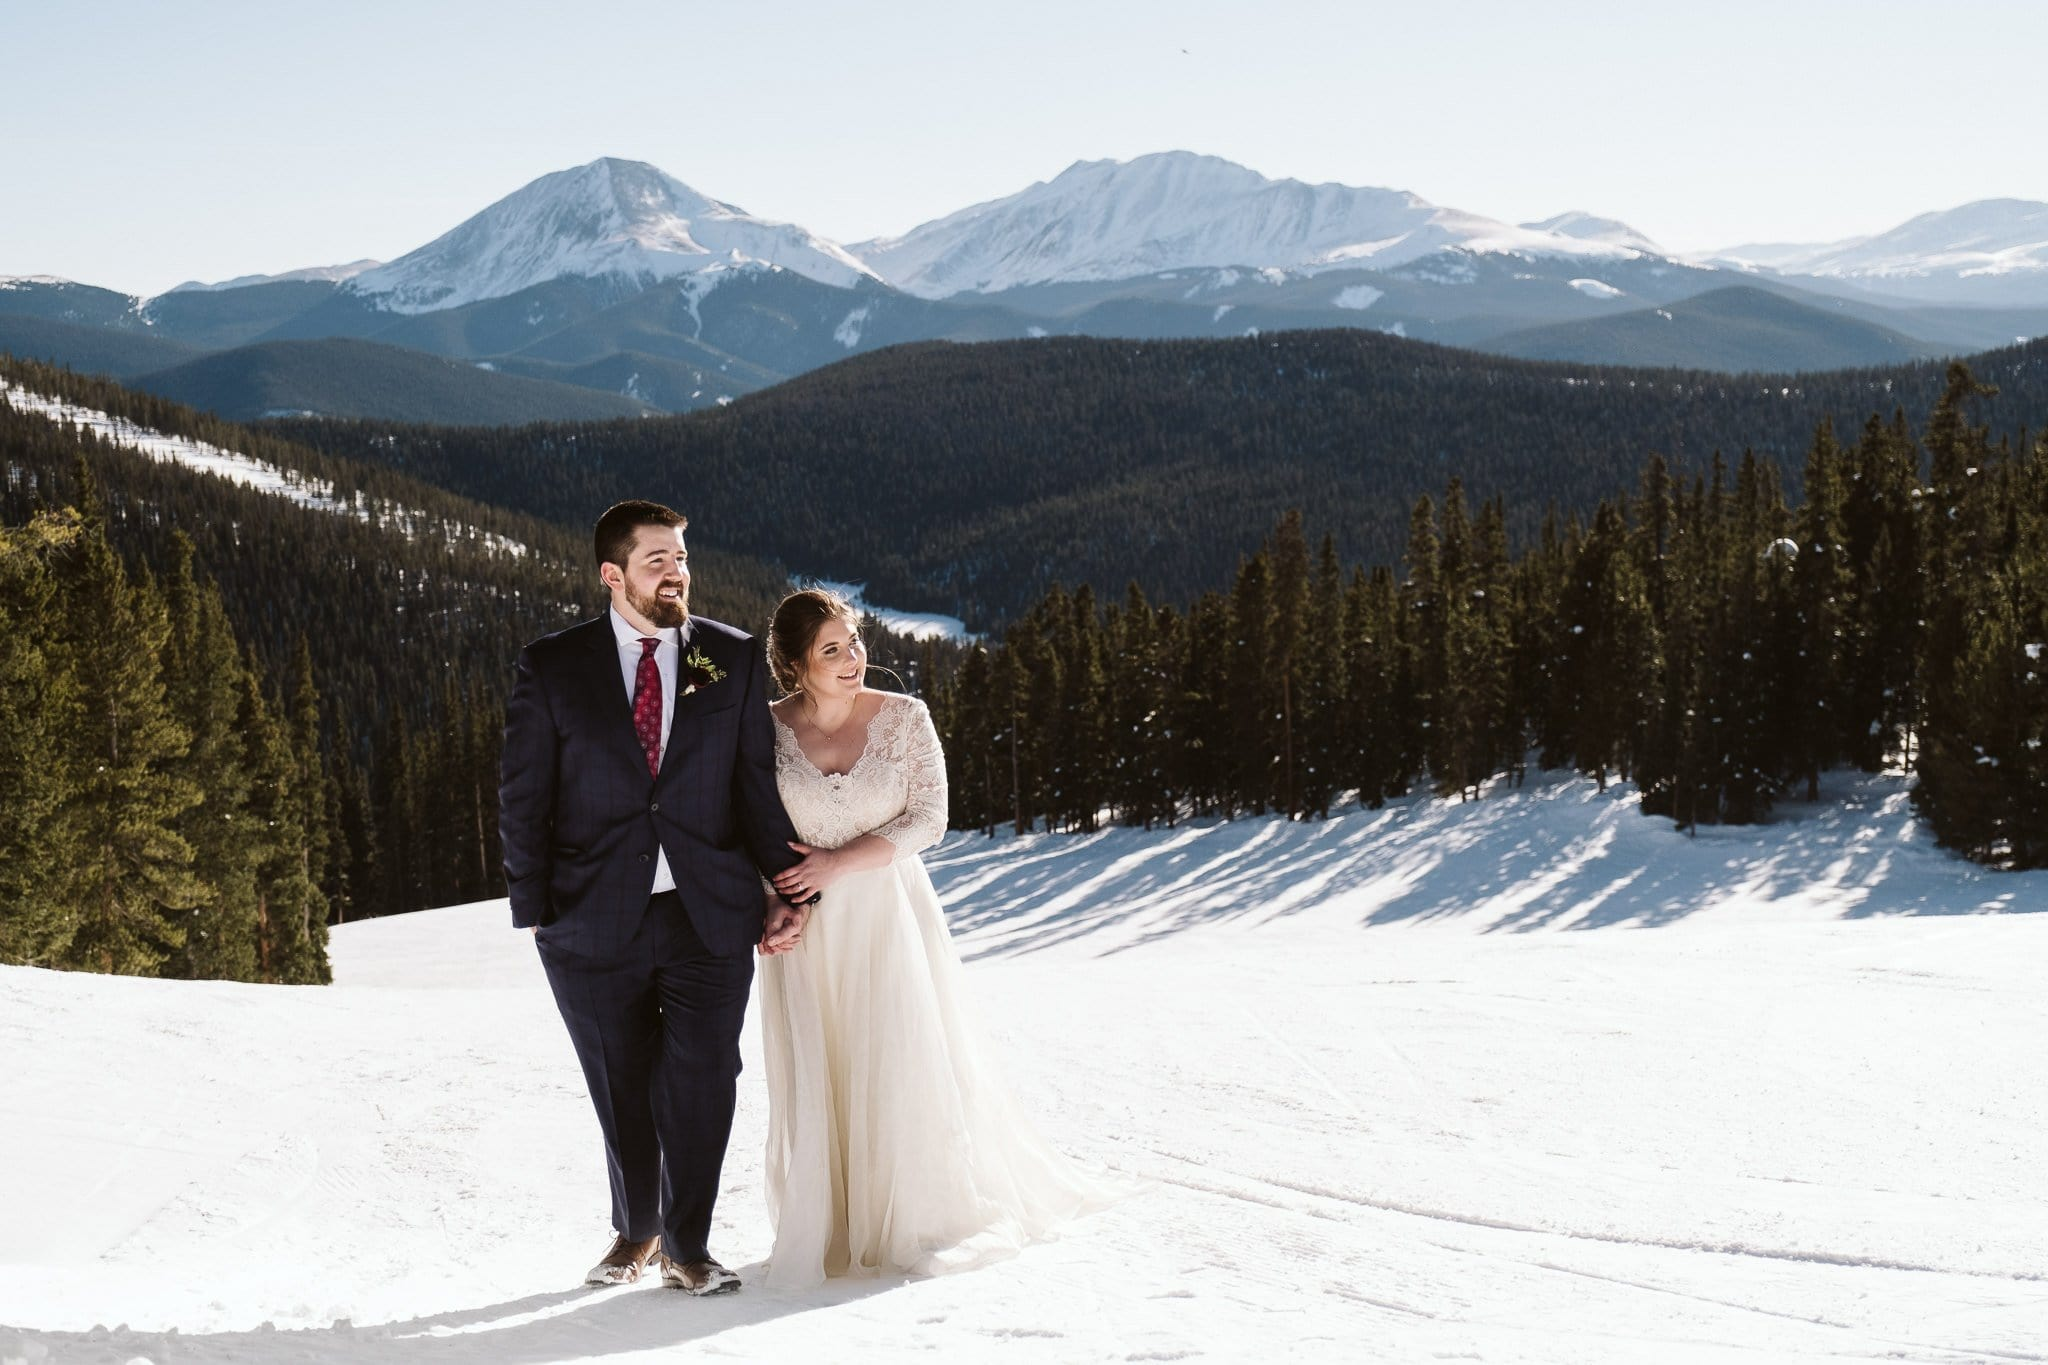 Bride and groom at Keystone Resort ski resort winter elopement.